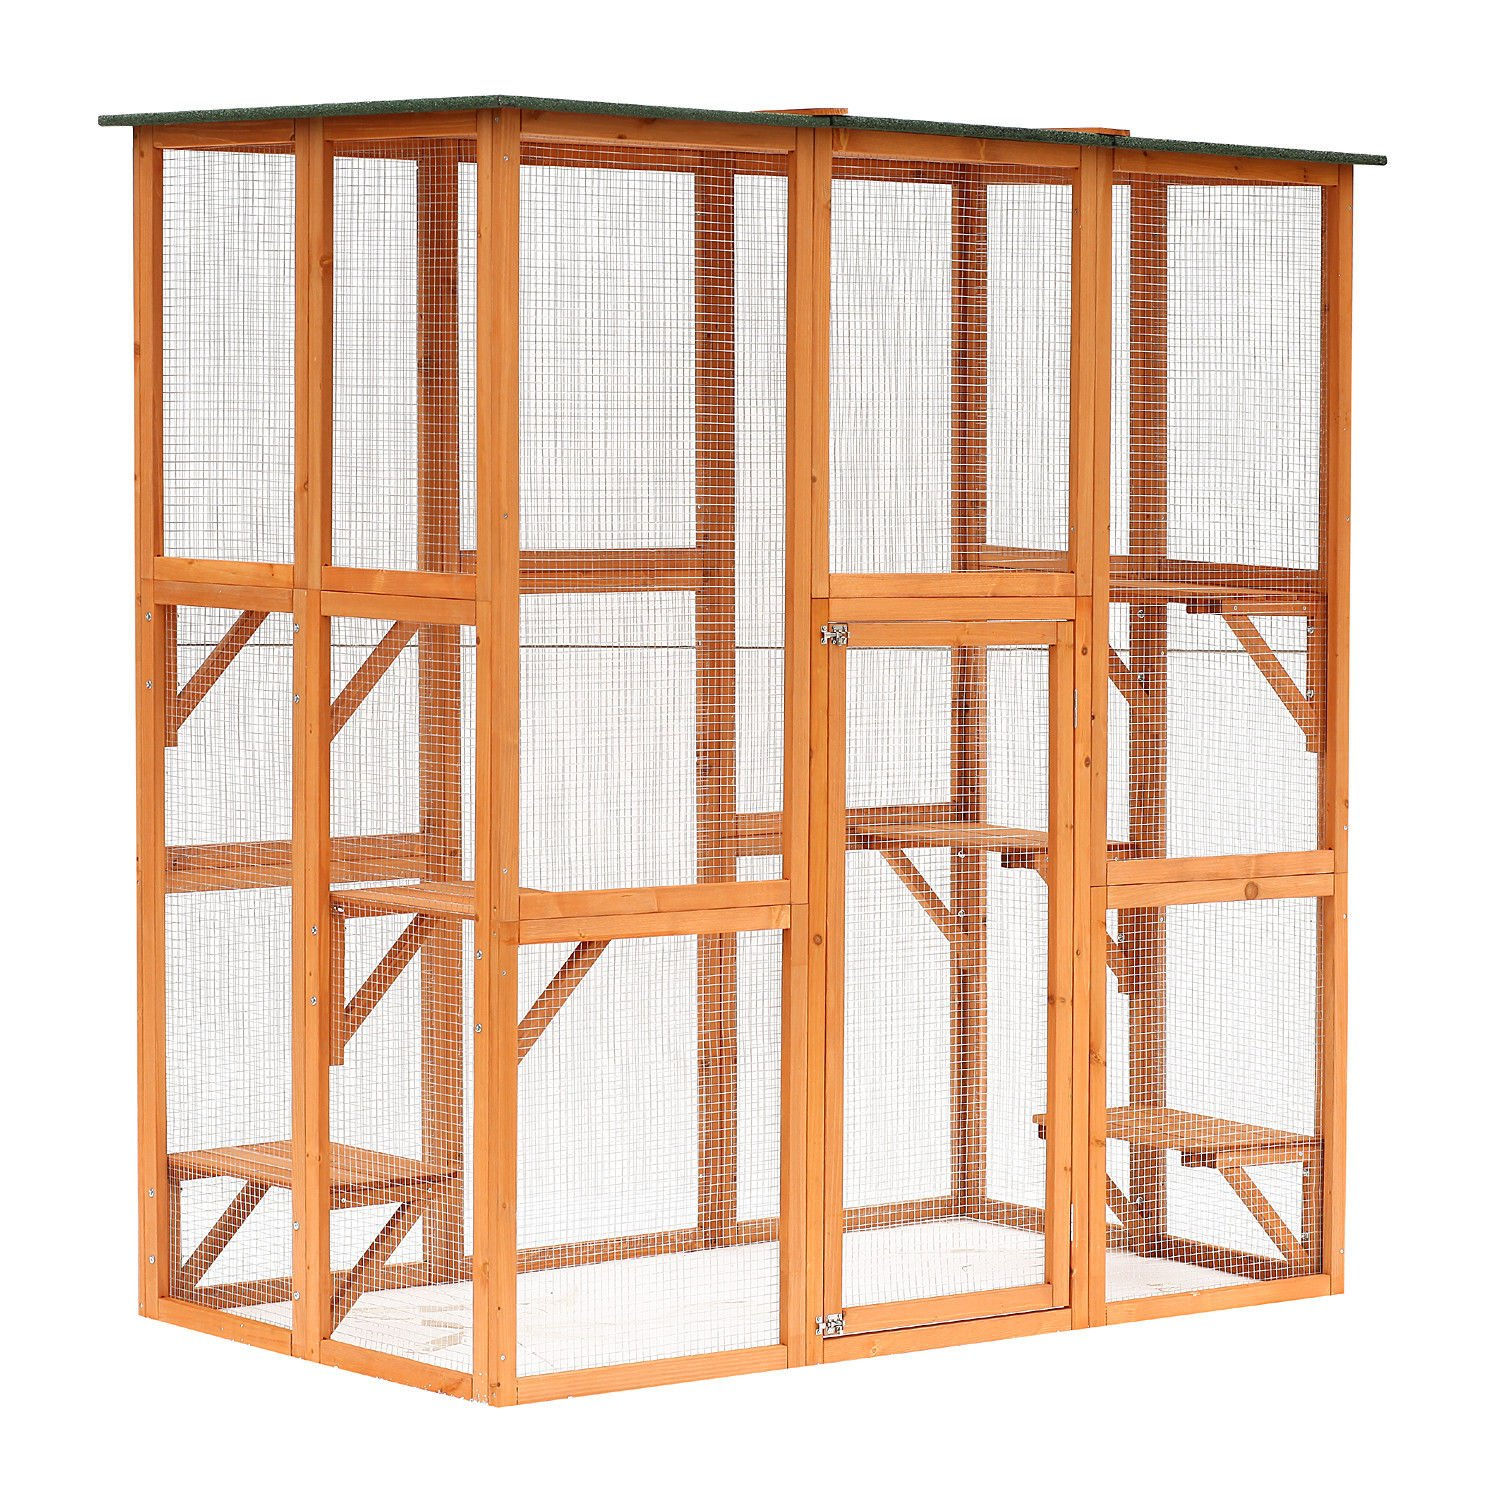 PawHut 71″ x 39″ x 71″ Large Wooden Outdoor Cat Enclosure Catio Cage with 6 Platforms